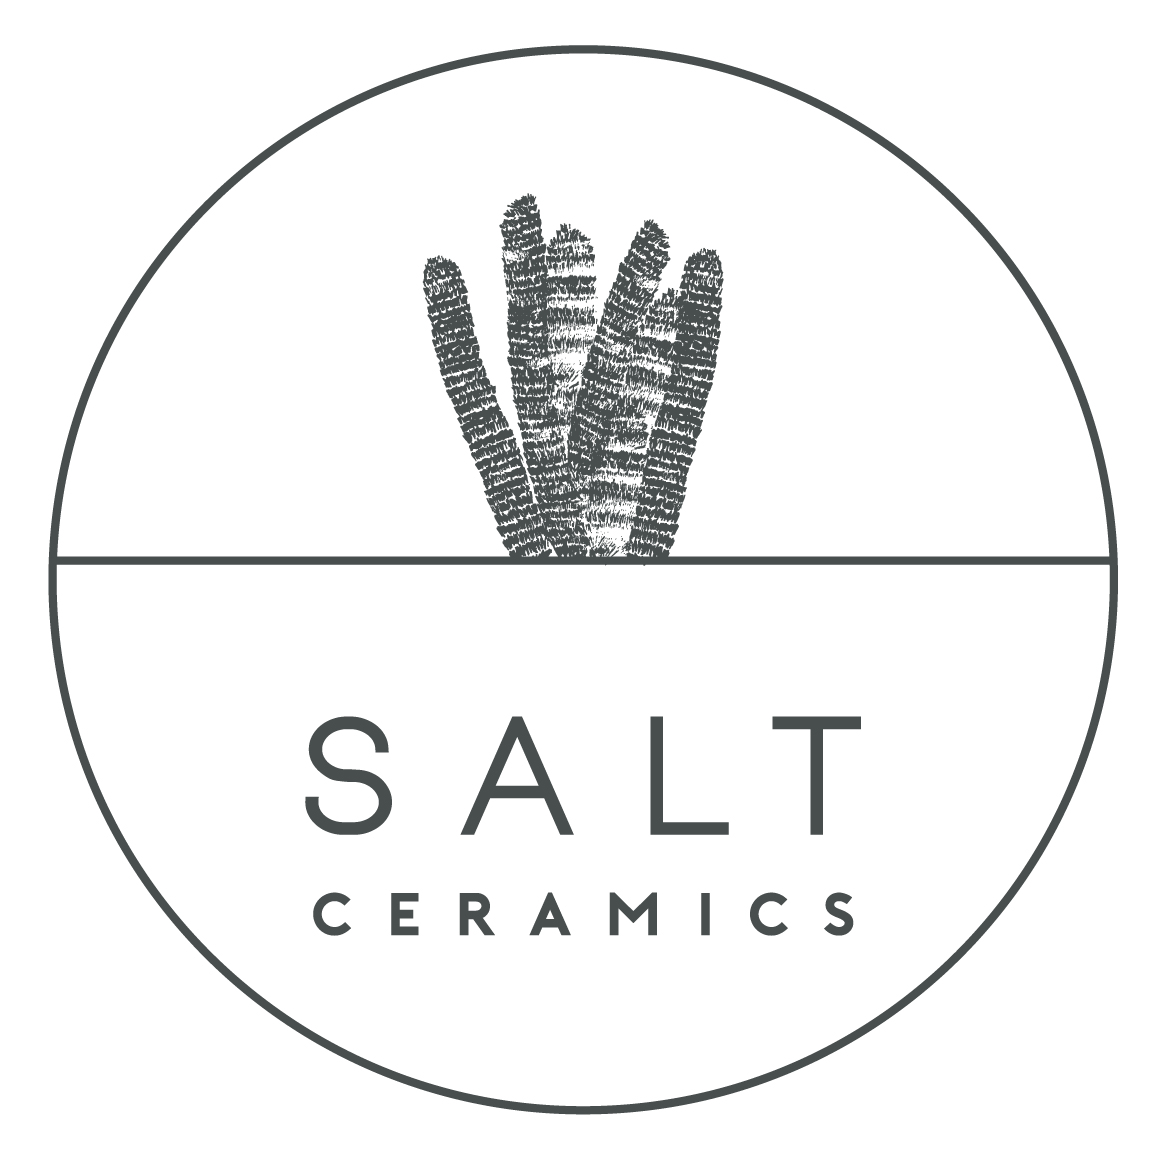 salt ceramics by jess cheatham